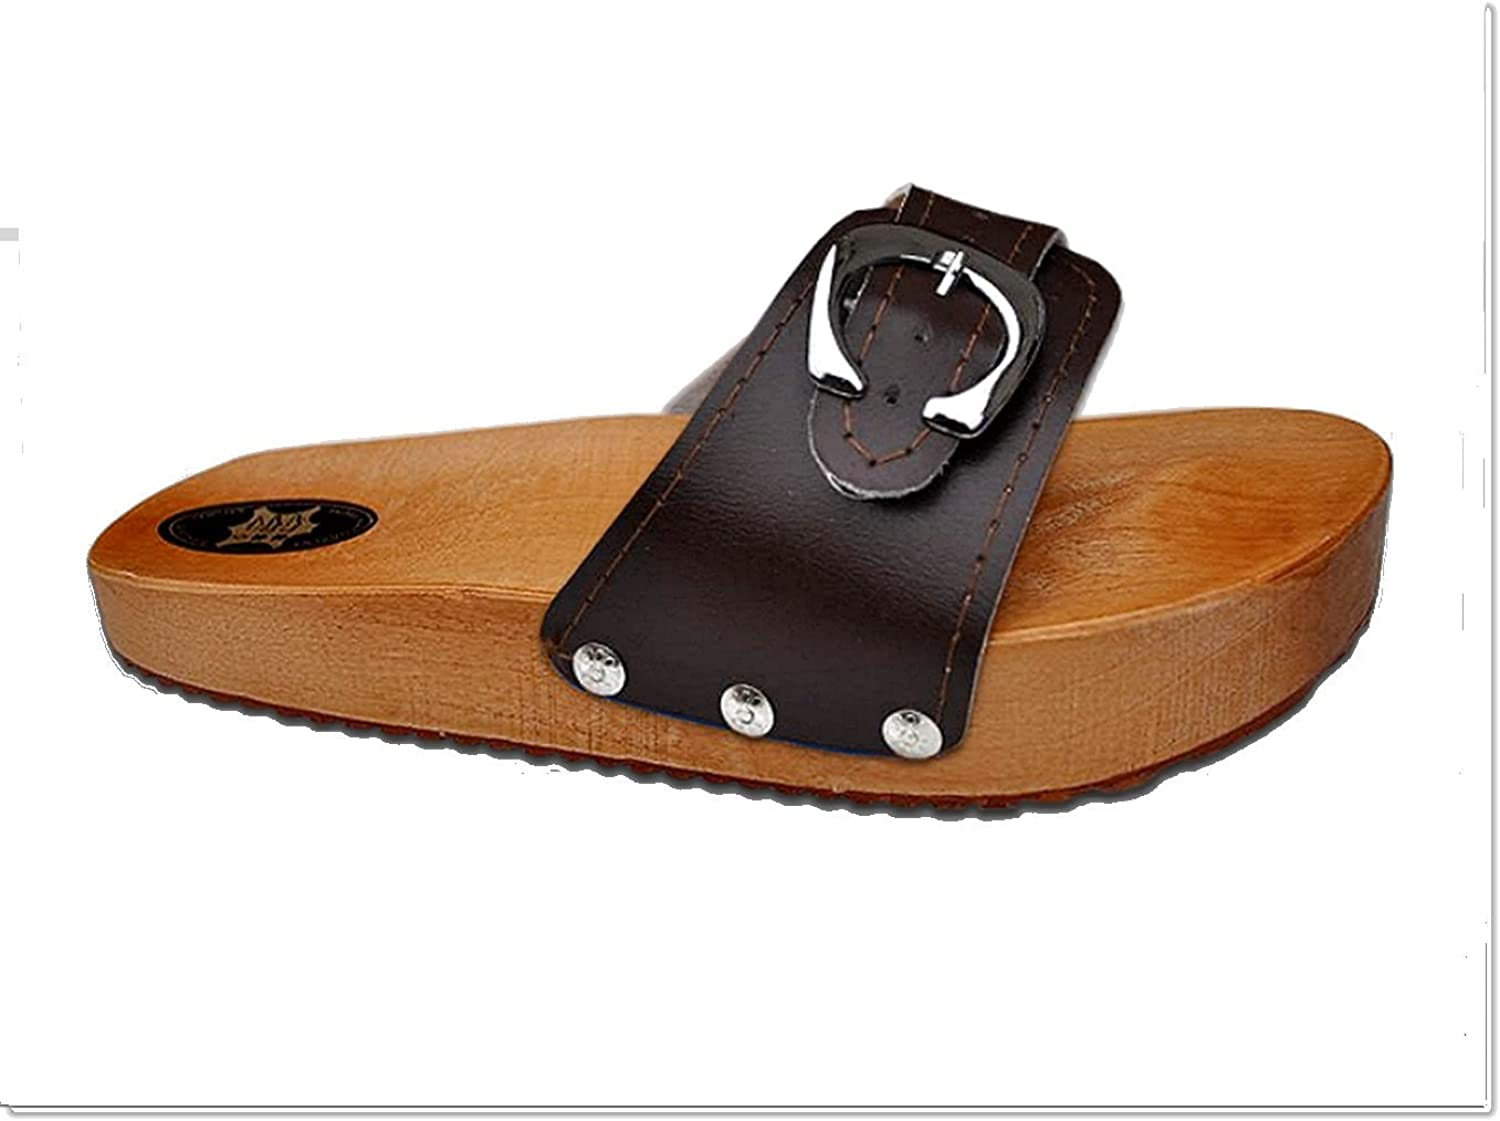 Marited' Brown Anti Cellulite Medical Slimming Sandals Clogs shoes Natural Wood and Leather